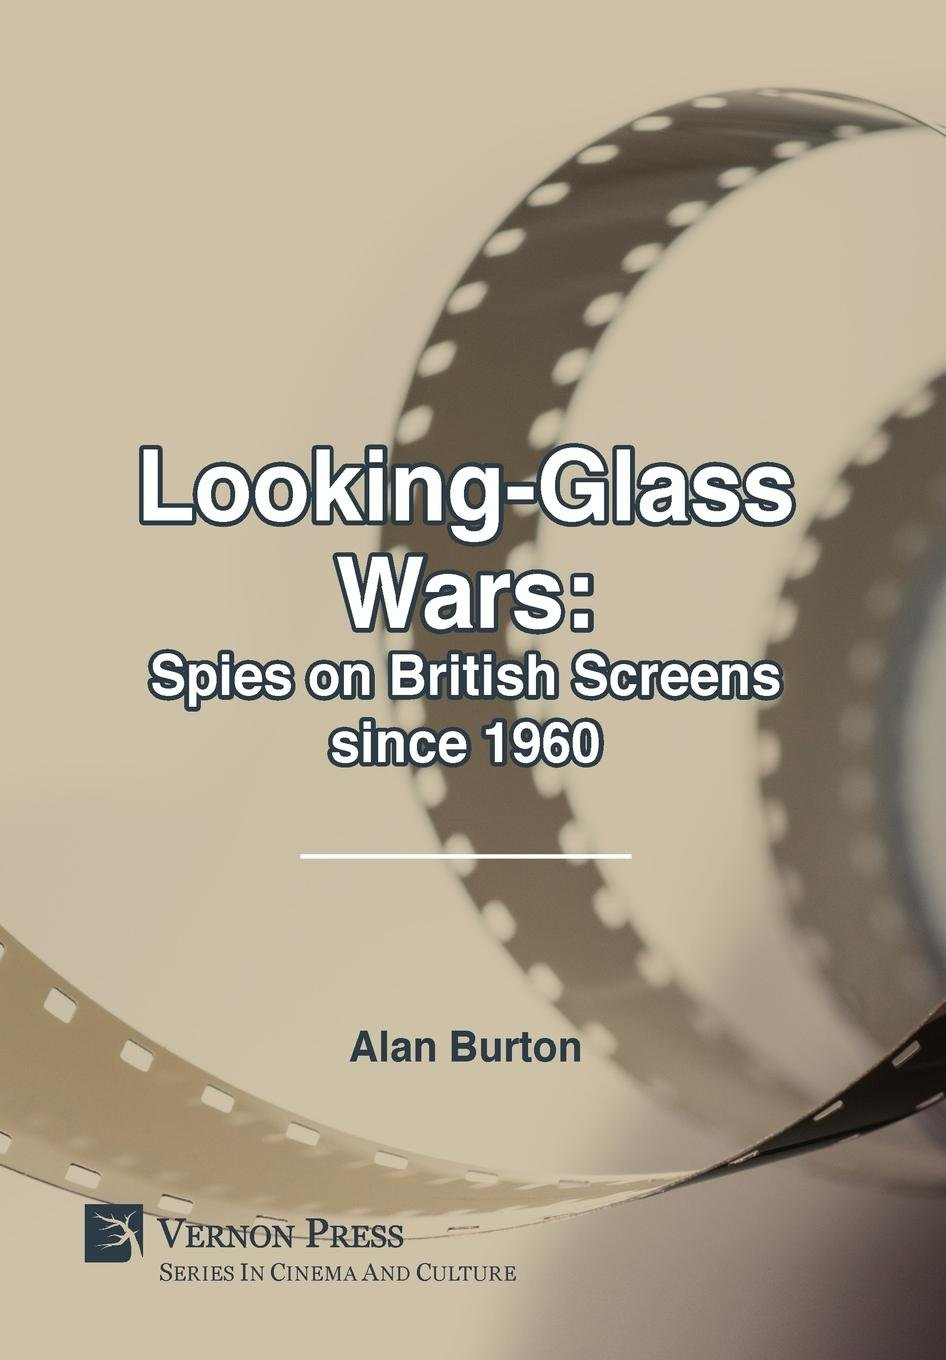 Read Online Looking-Glass Wars: Spies on British Screens since 1960 (Series in Cinema and Culture) PDF